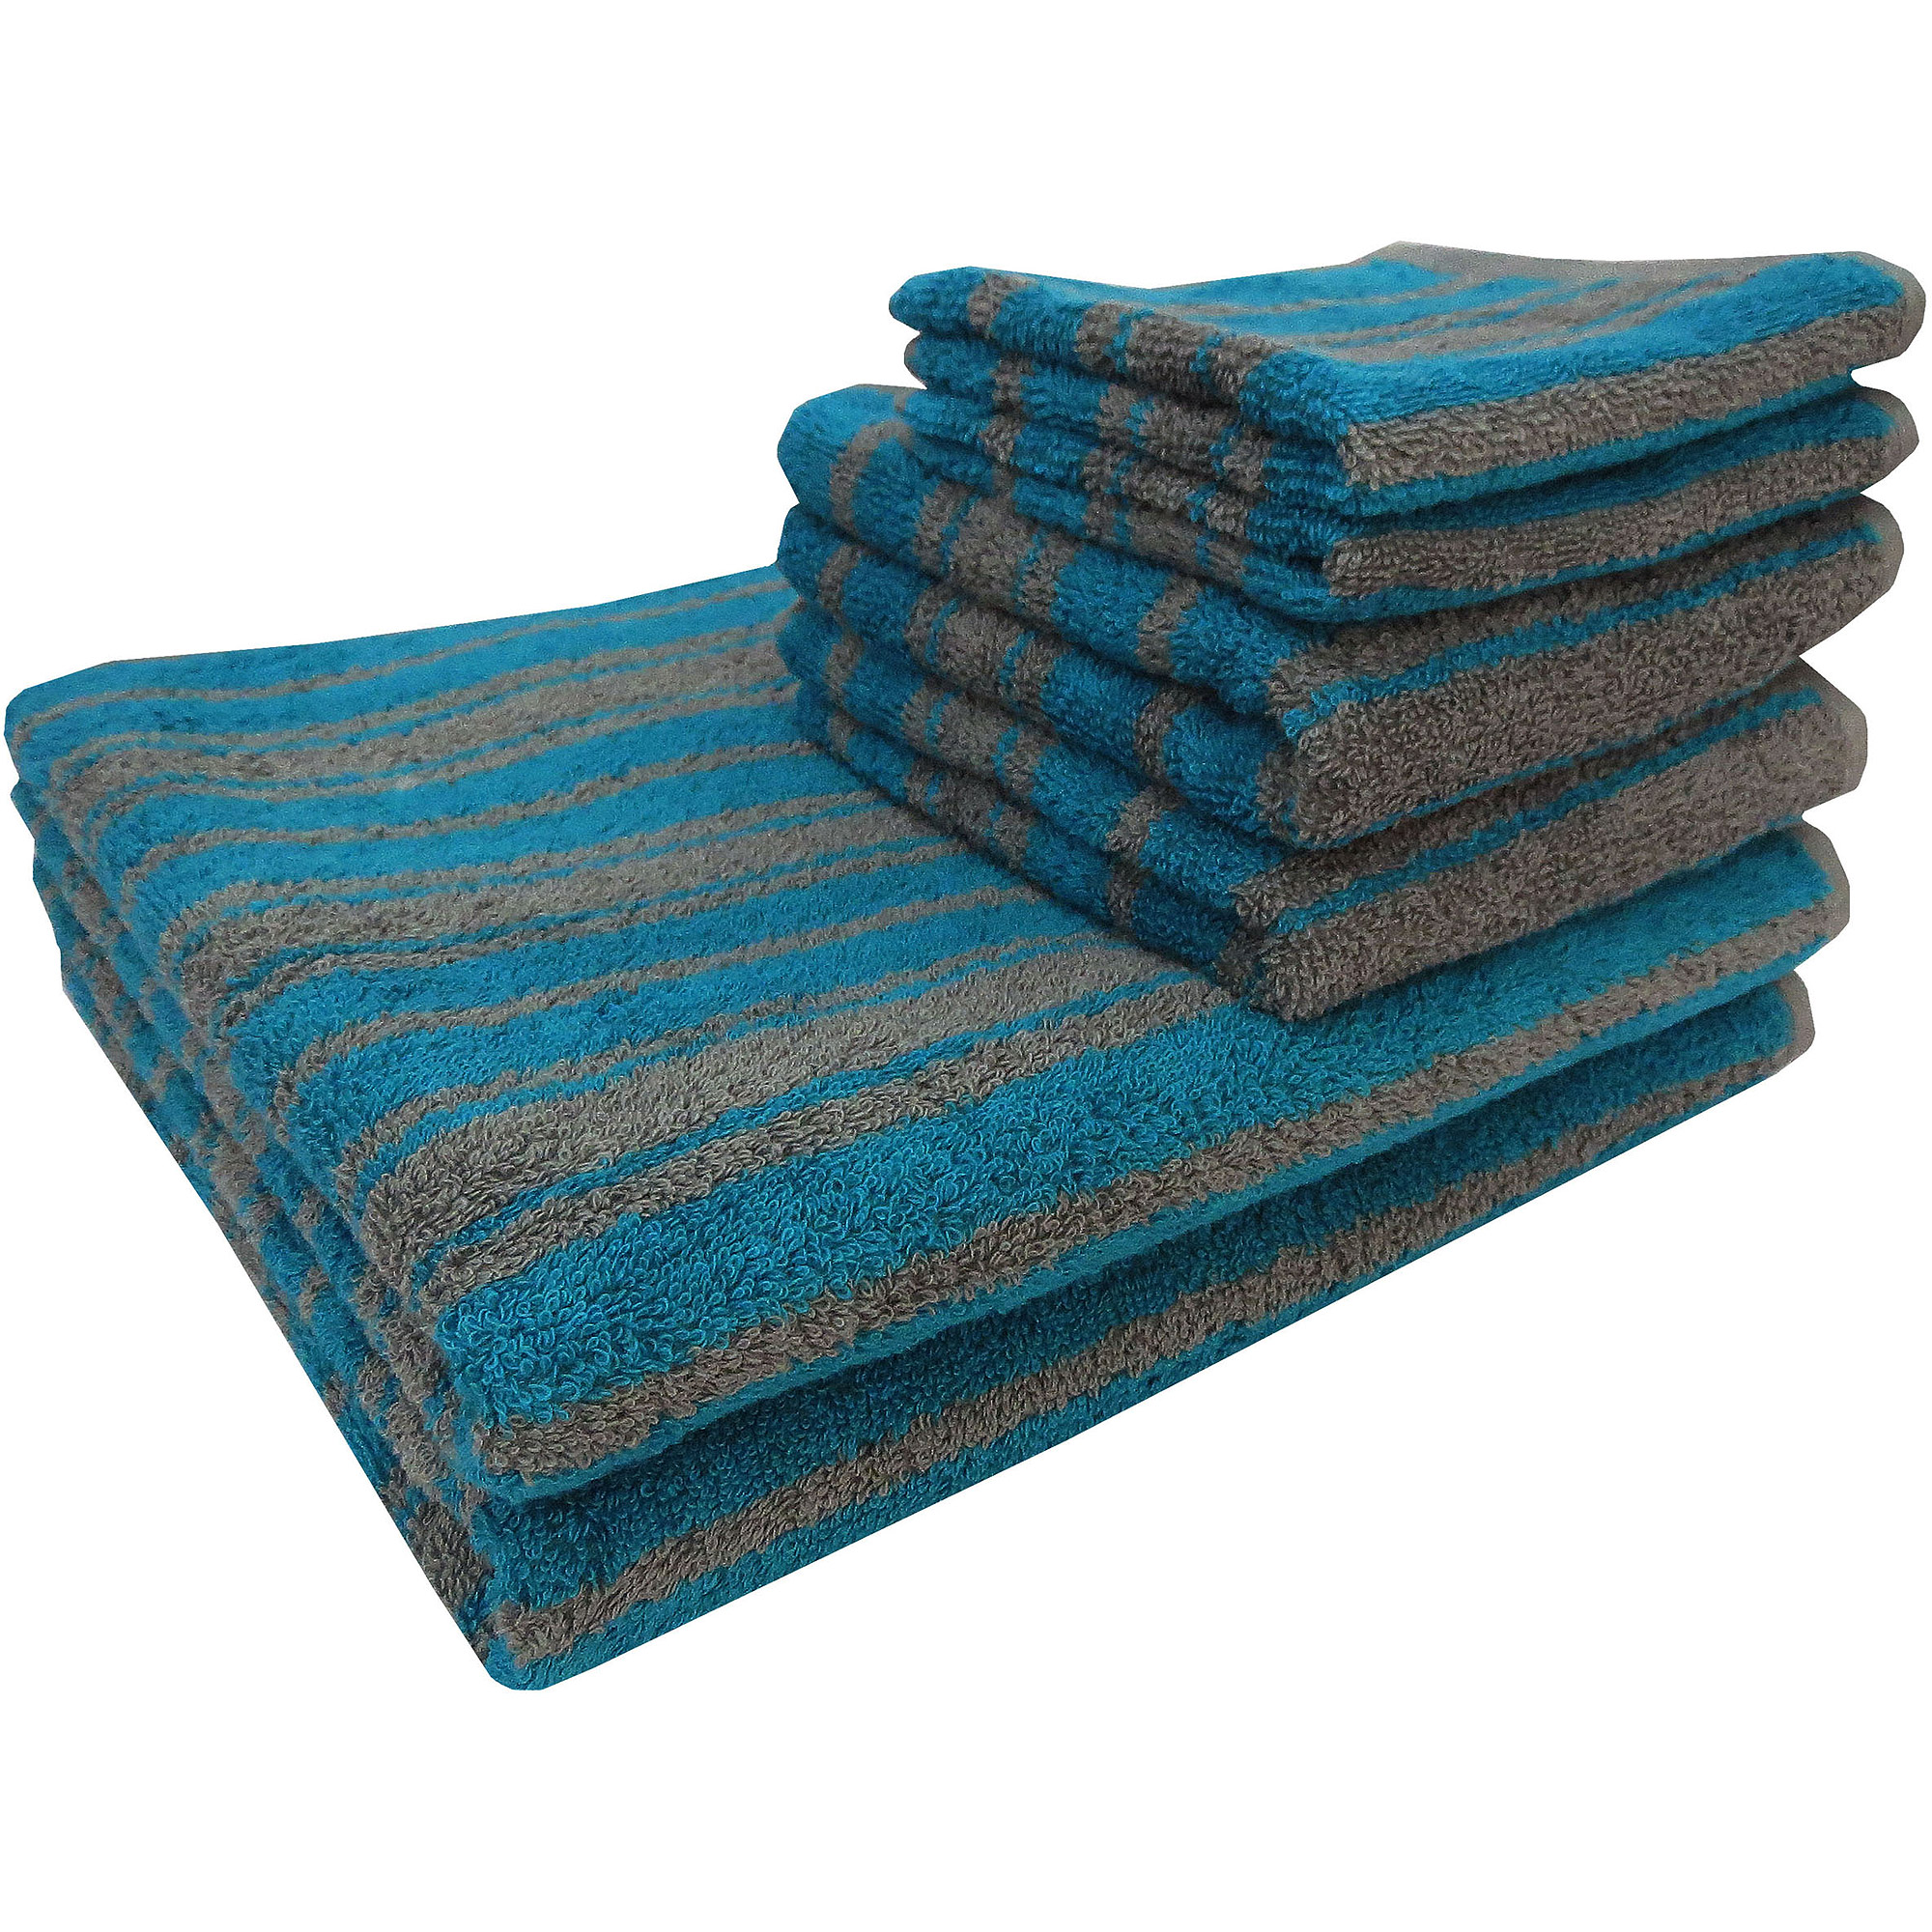 Mainstays Tc Yarn Dye 6 Pc Towel Set Teal/grey